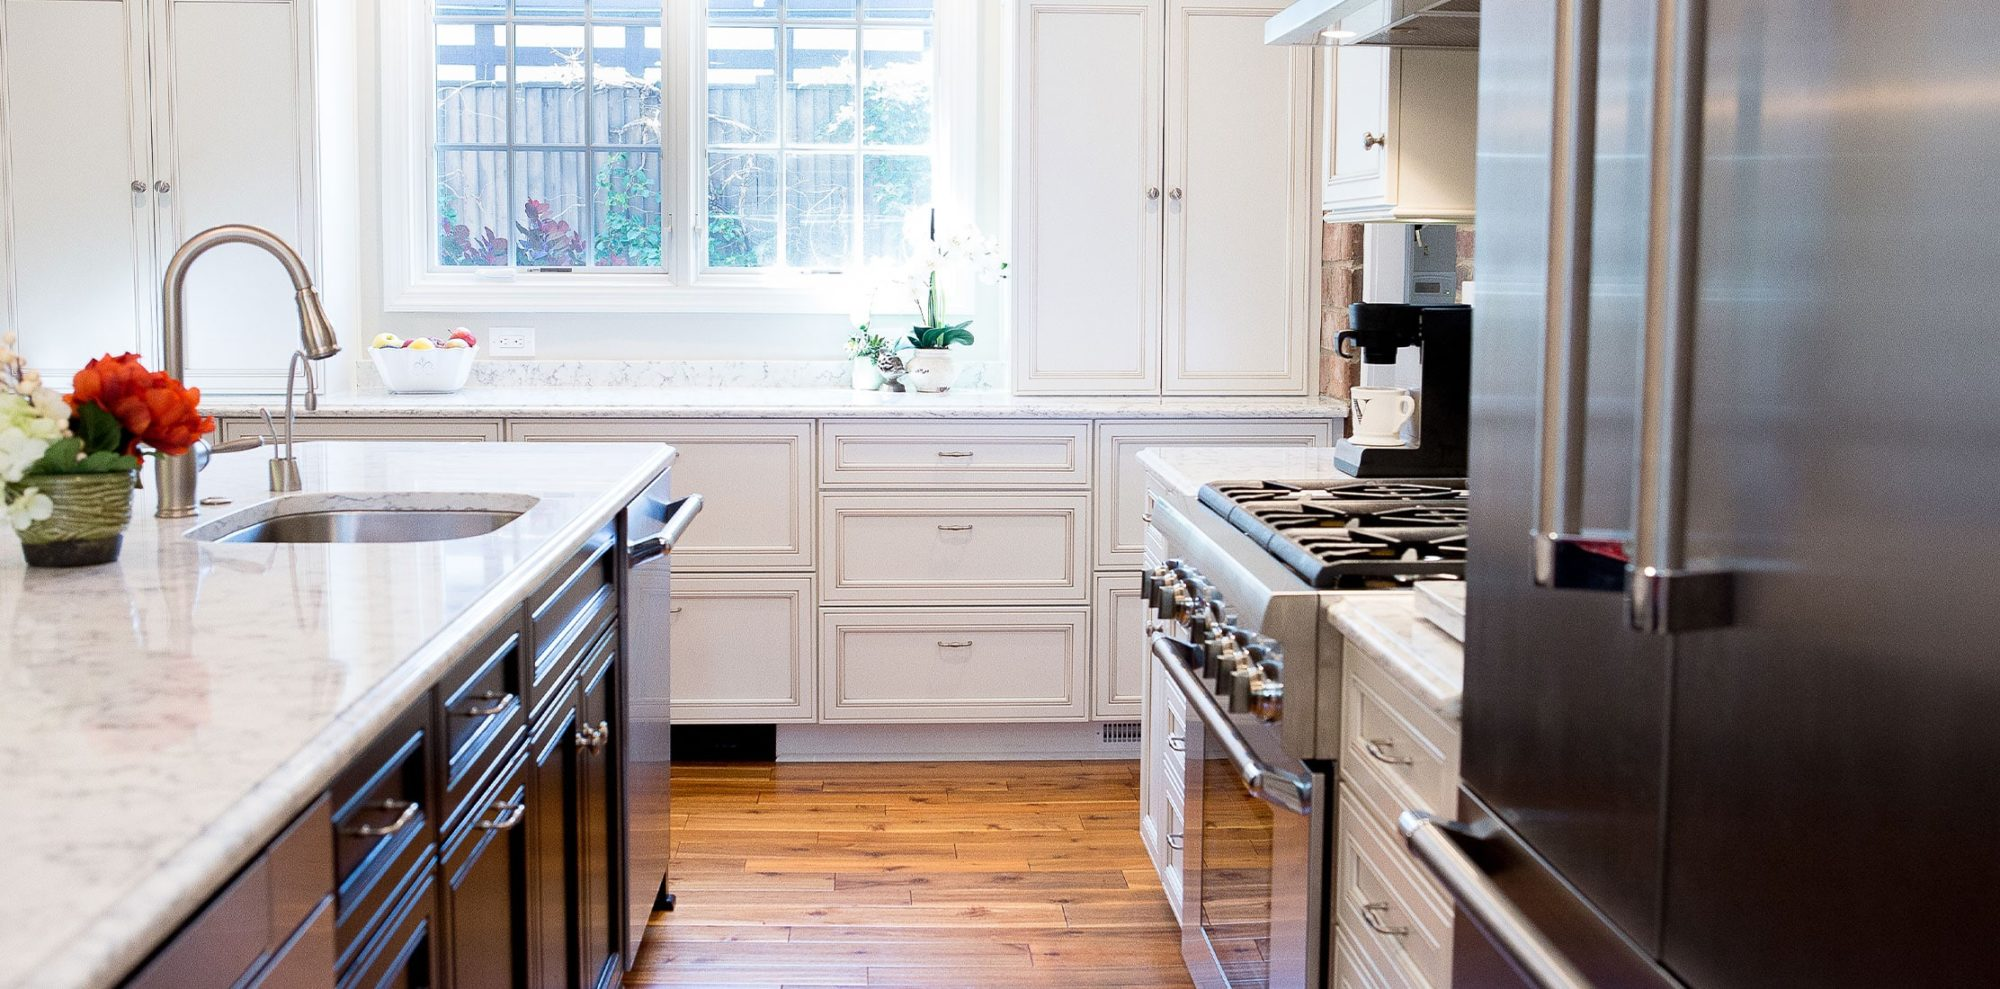 White and brown contrasting cabinets in renovated kitchen